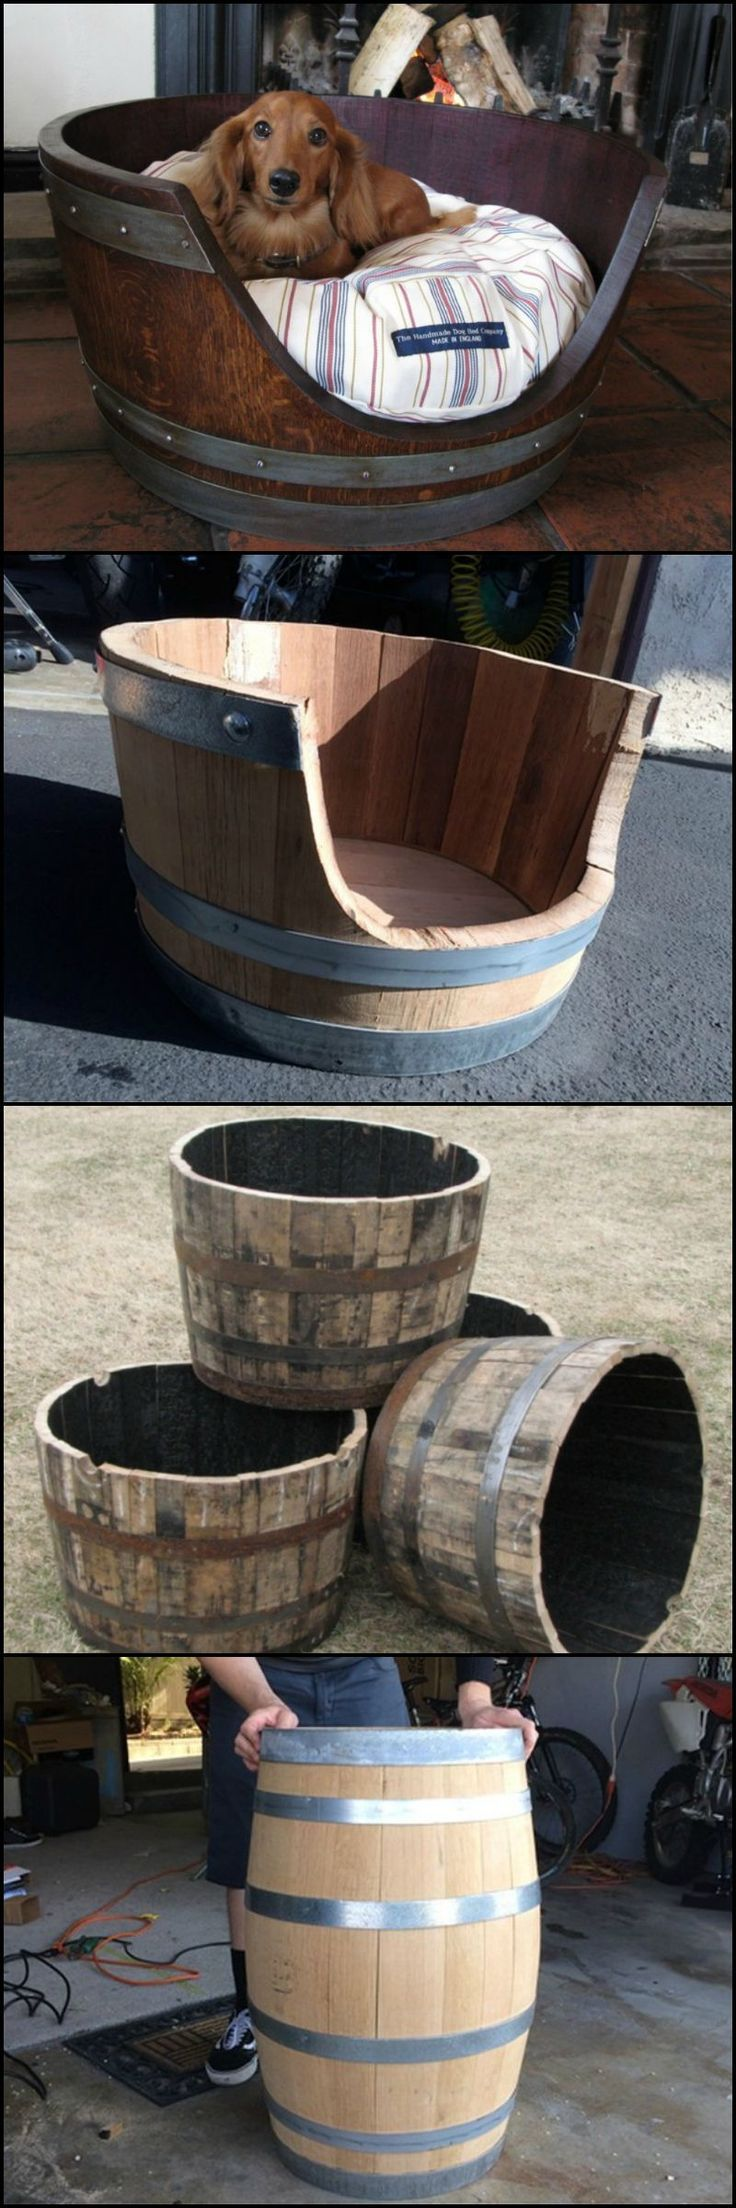 15 DIY Dog Bed Ideas including this Wine barrel dog bed